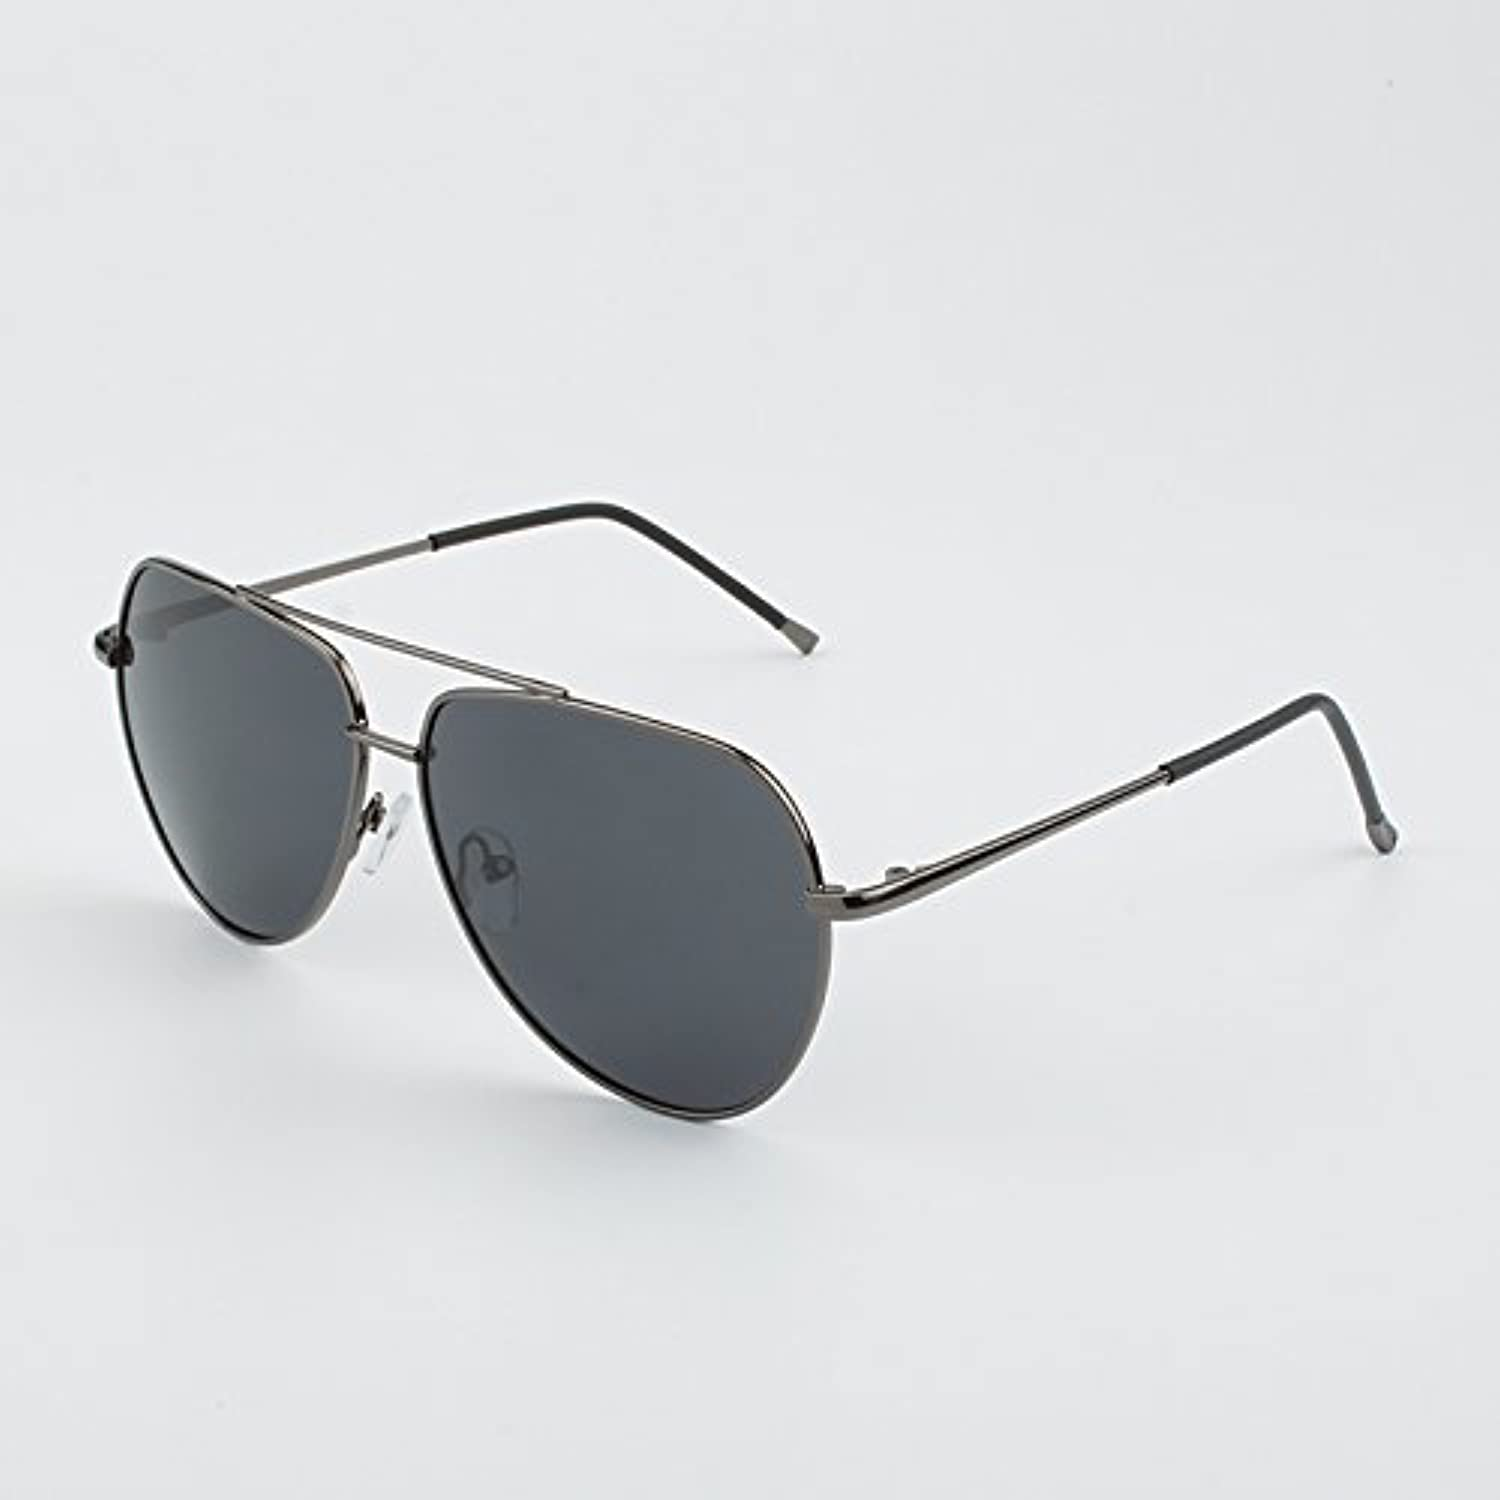 Kunzhangpolarized Sunglasses, Driver Sunglasses, Beach Tour Glasses, Glasses, Mirrors,,This Price Is Only A Frame, And The Sun'S Myopia Lens Is Taken.